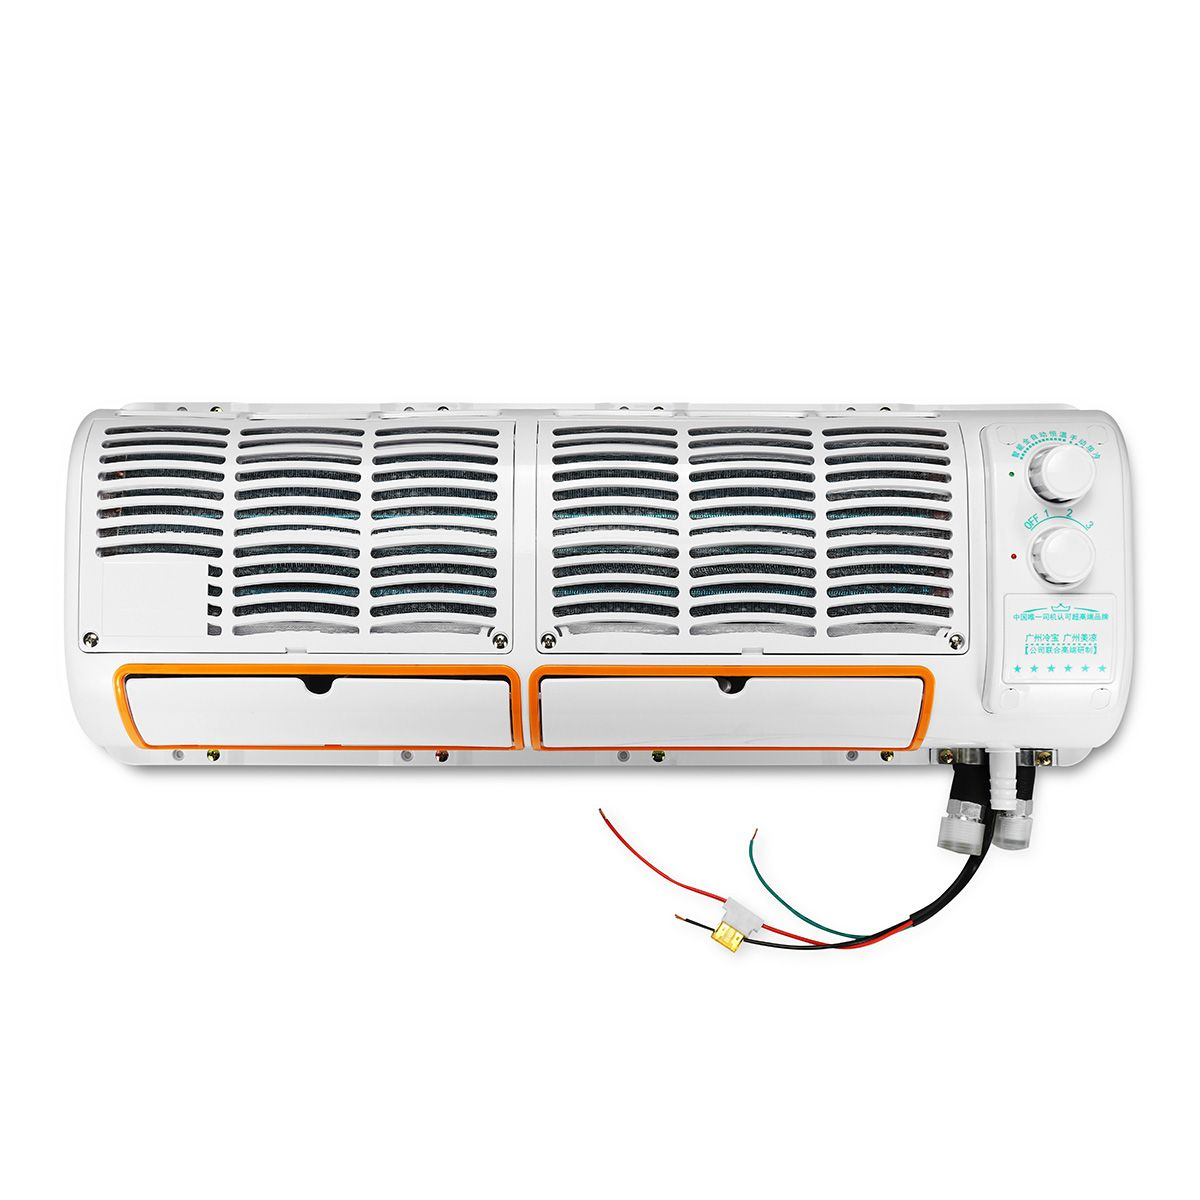 12 24v Air Conditioner Wall Mounted Cooling Fan For Caravan Truck Air Conditioning Wall Mounted Air Conditioner Air Conditioner Caravan